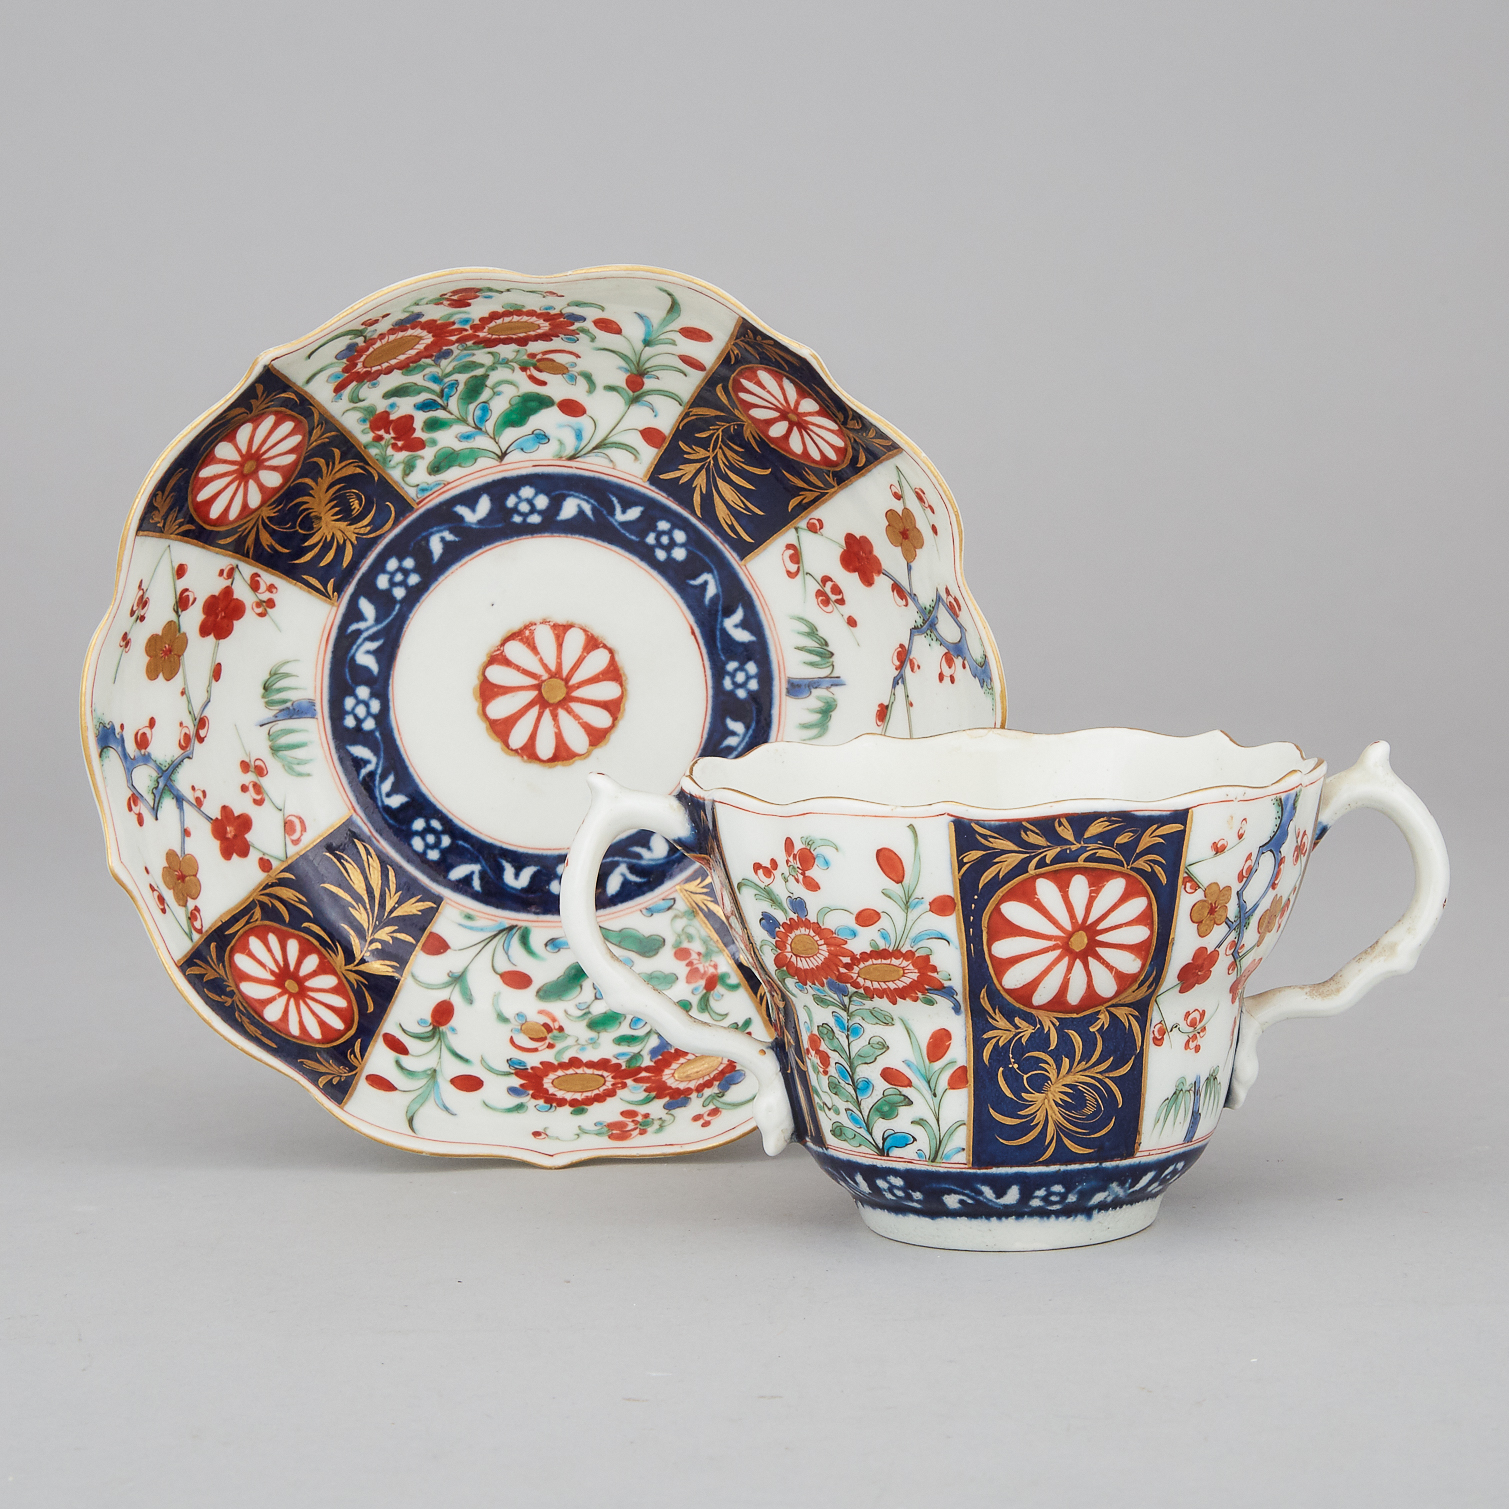 Worcester Queen's Pattern Caudle Cup and Saucer, c.1770